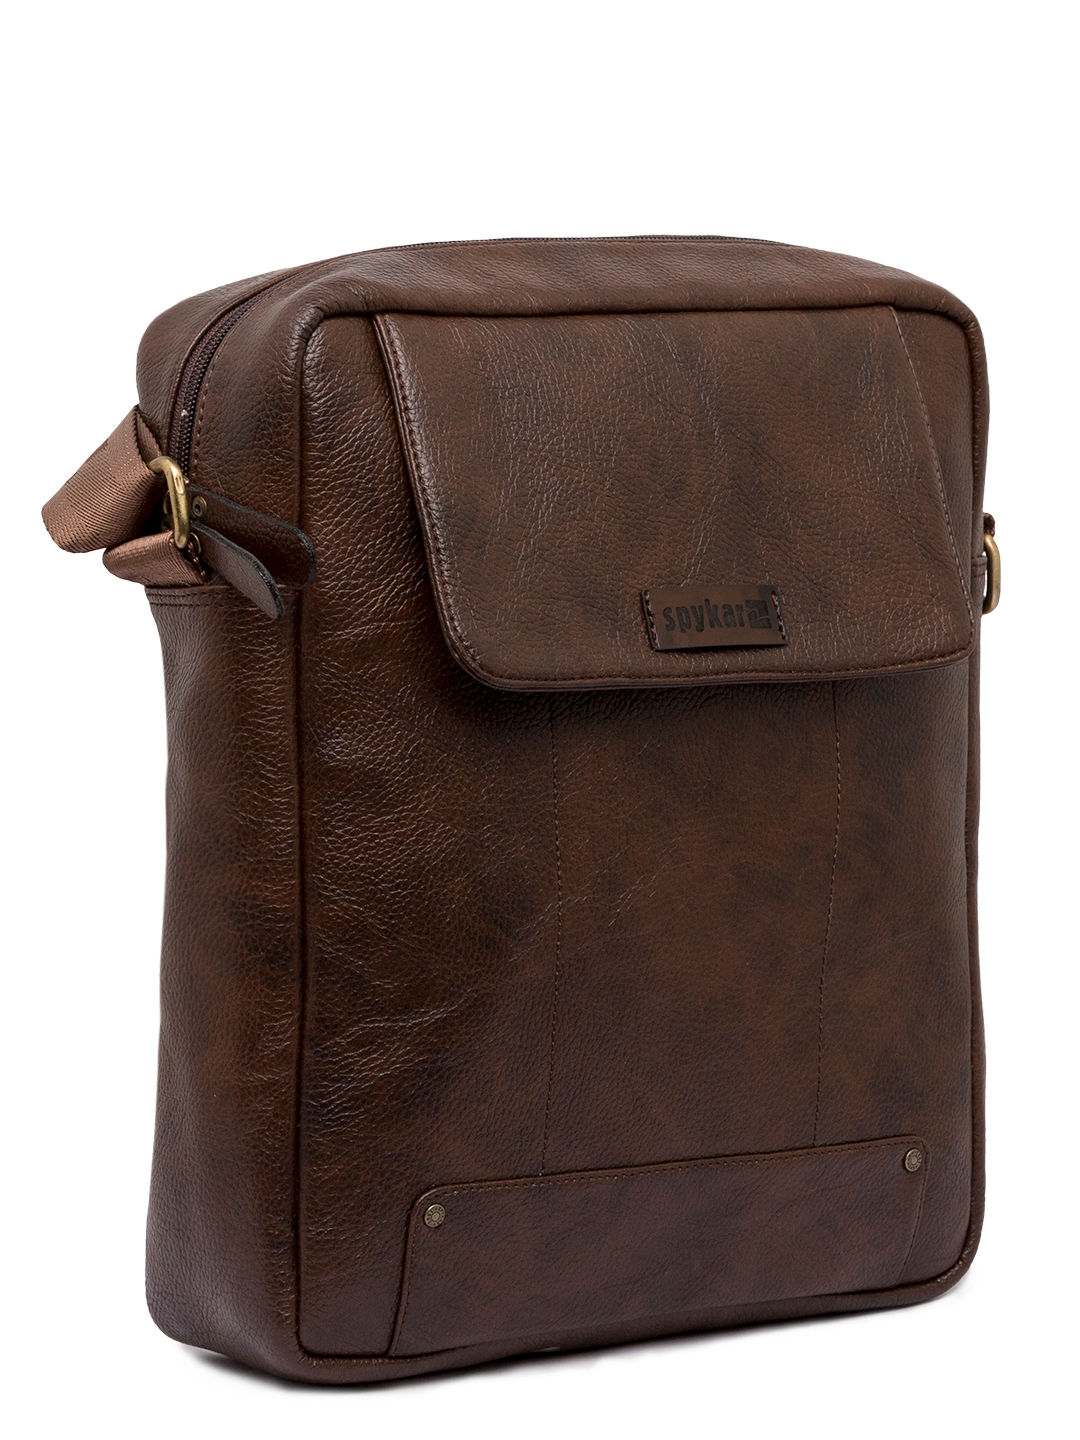 Spykar Brown Genuine Leather Messenger Bag